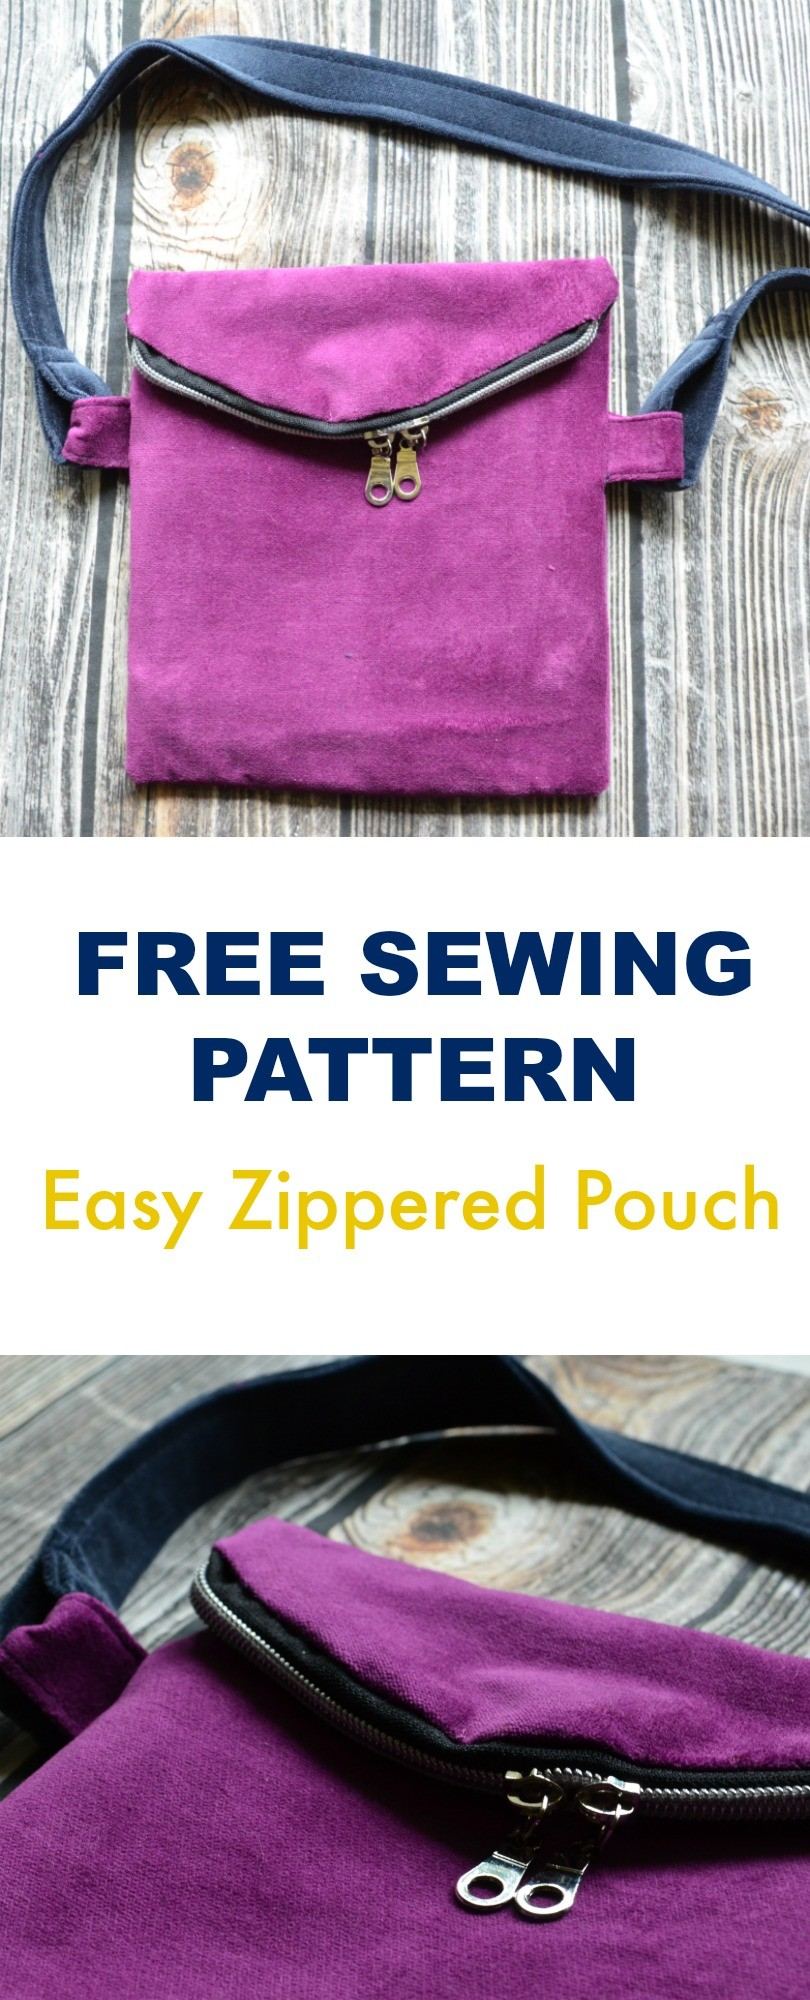 FREE PATTERN ALERT 1 HOUR SEWING PROJECT  On the Cutting